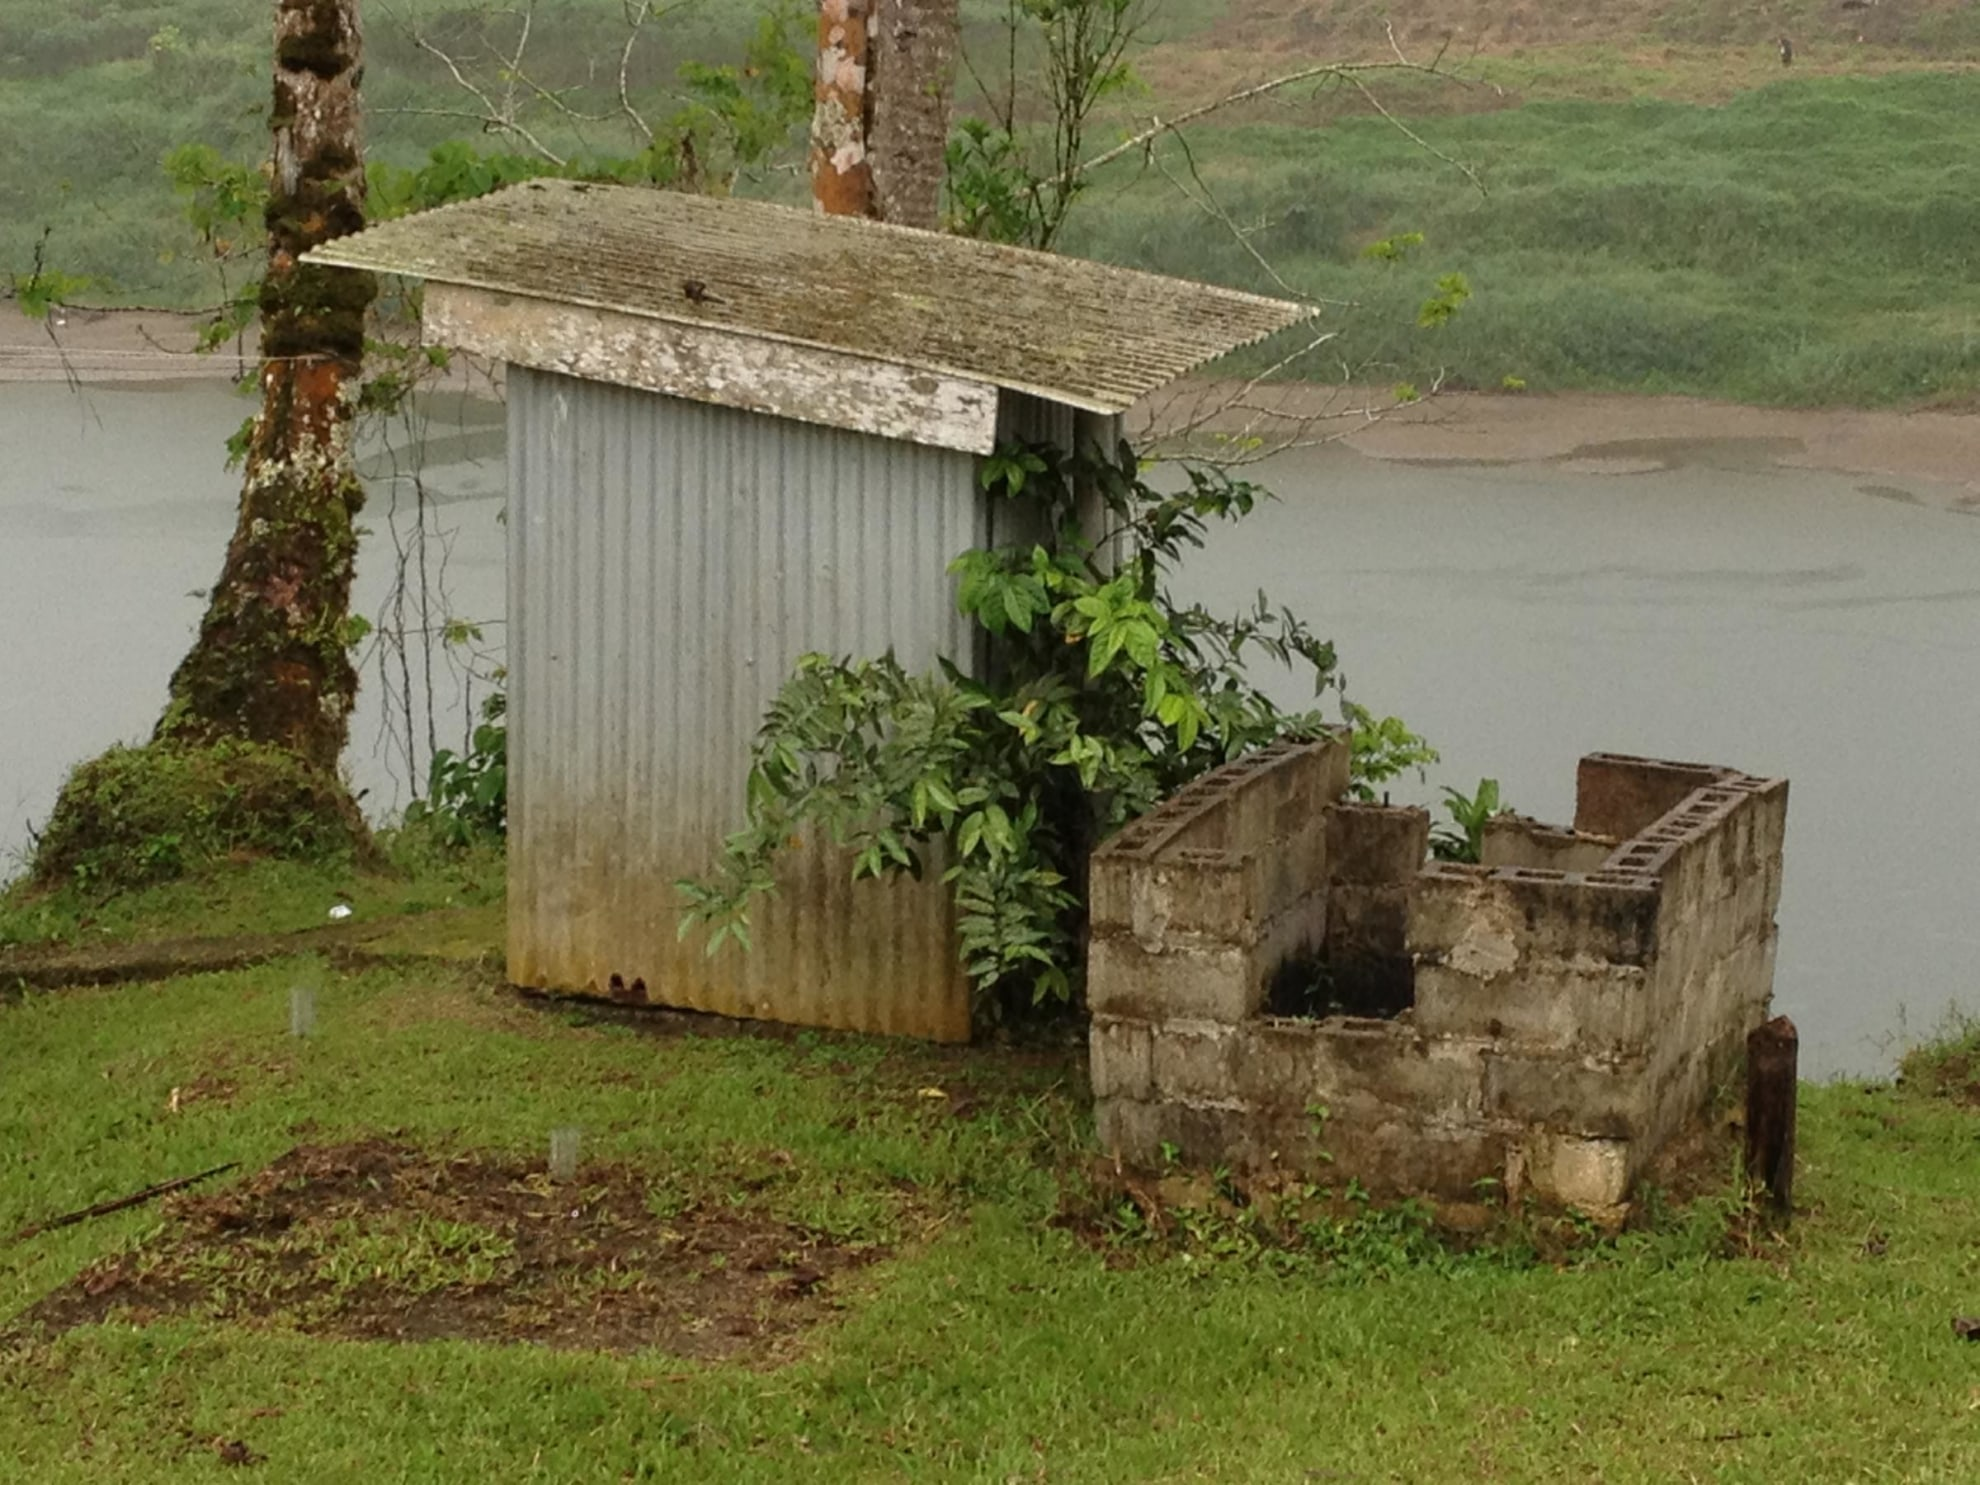 Toilet in Fiji